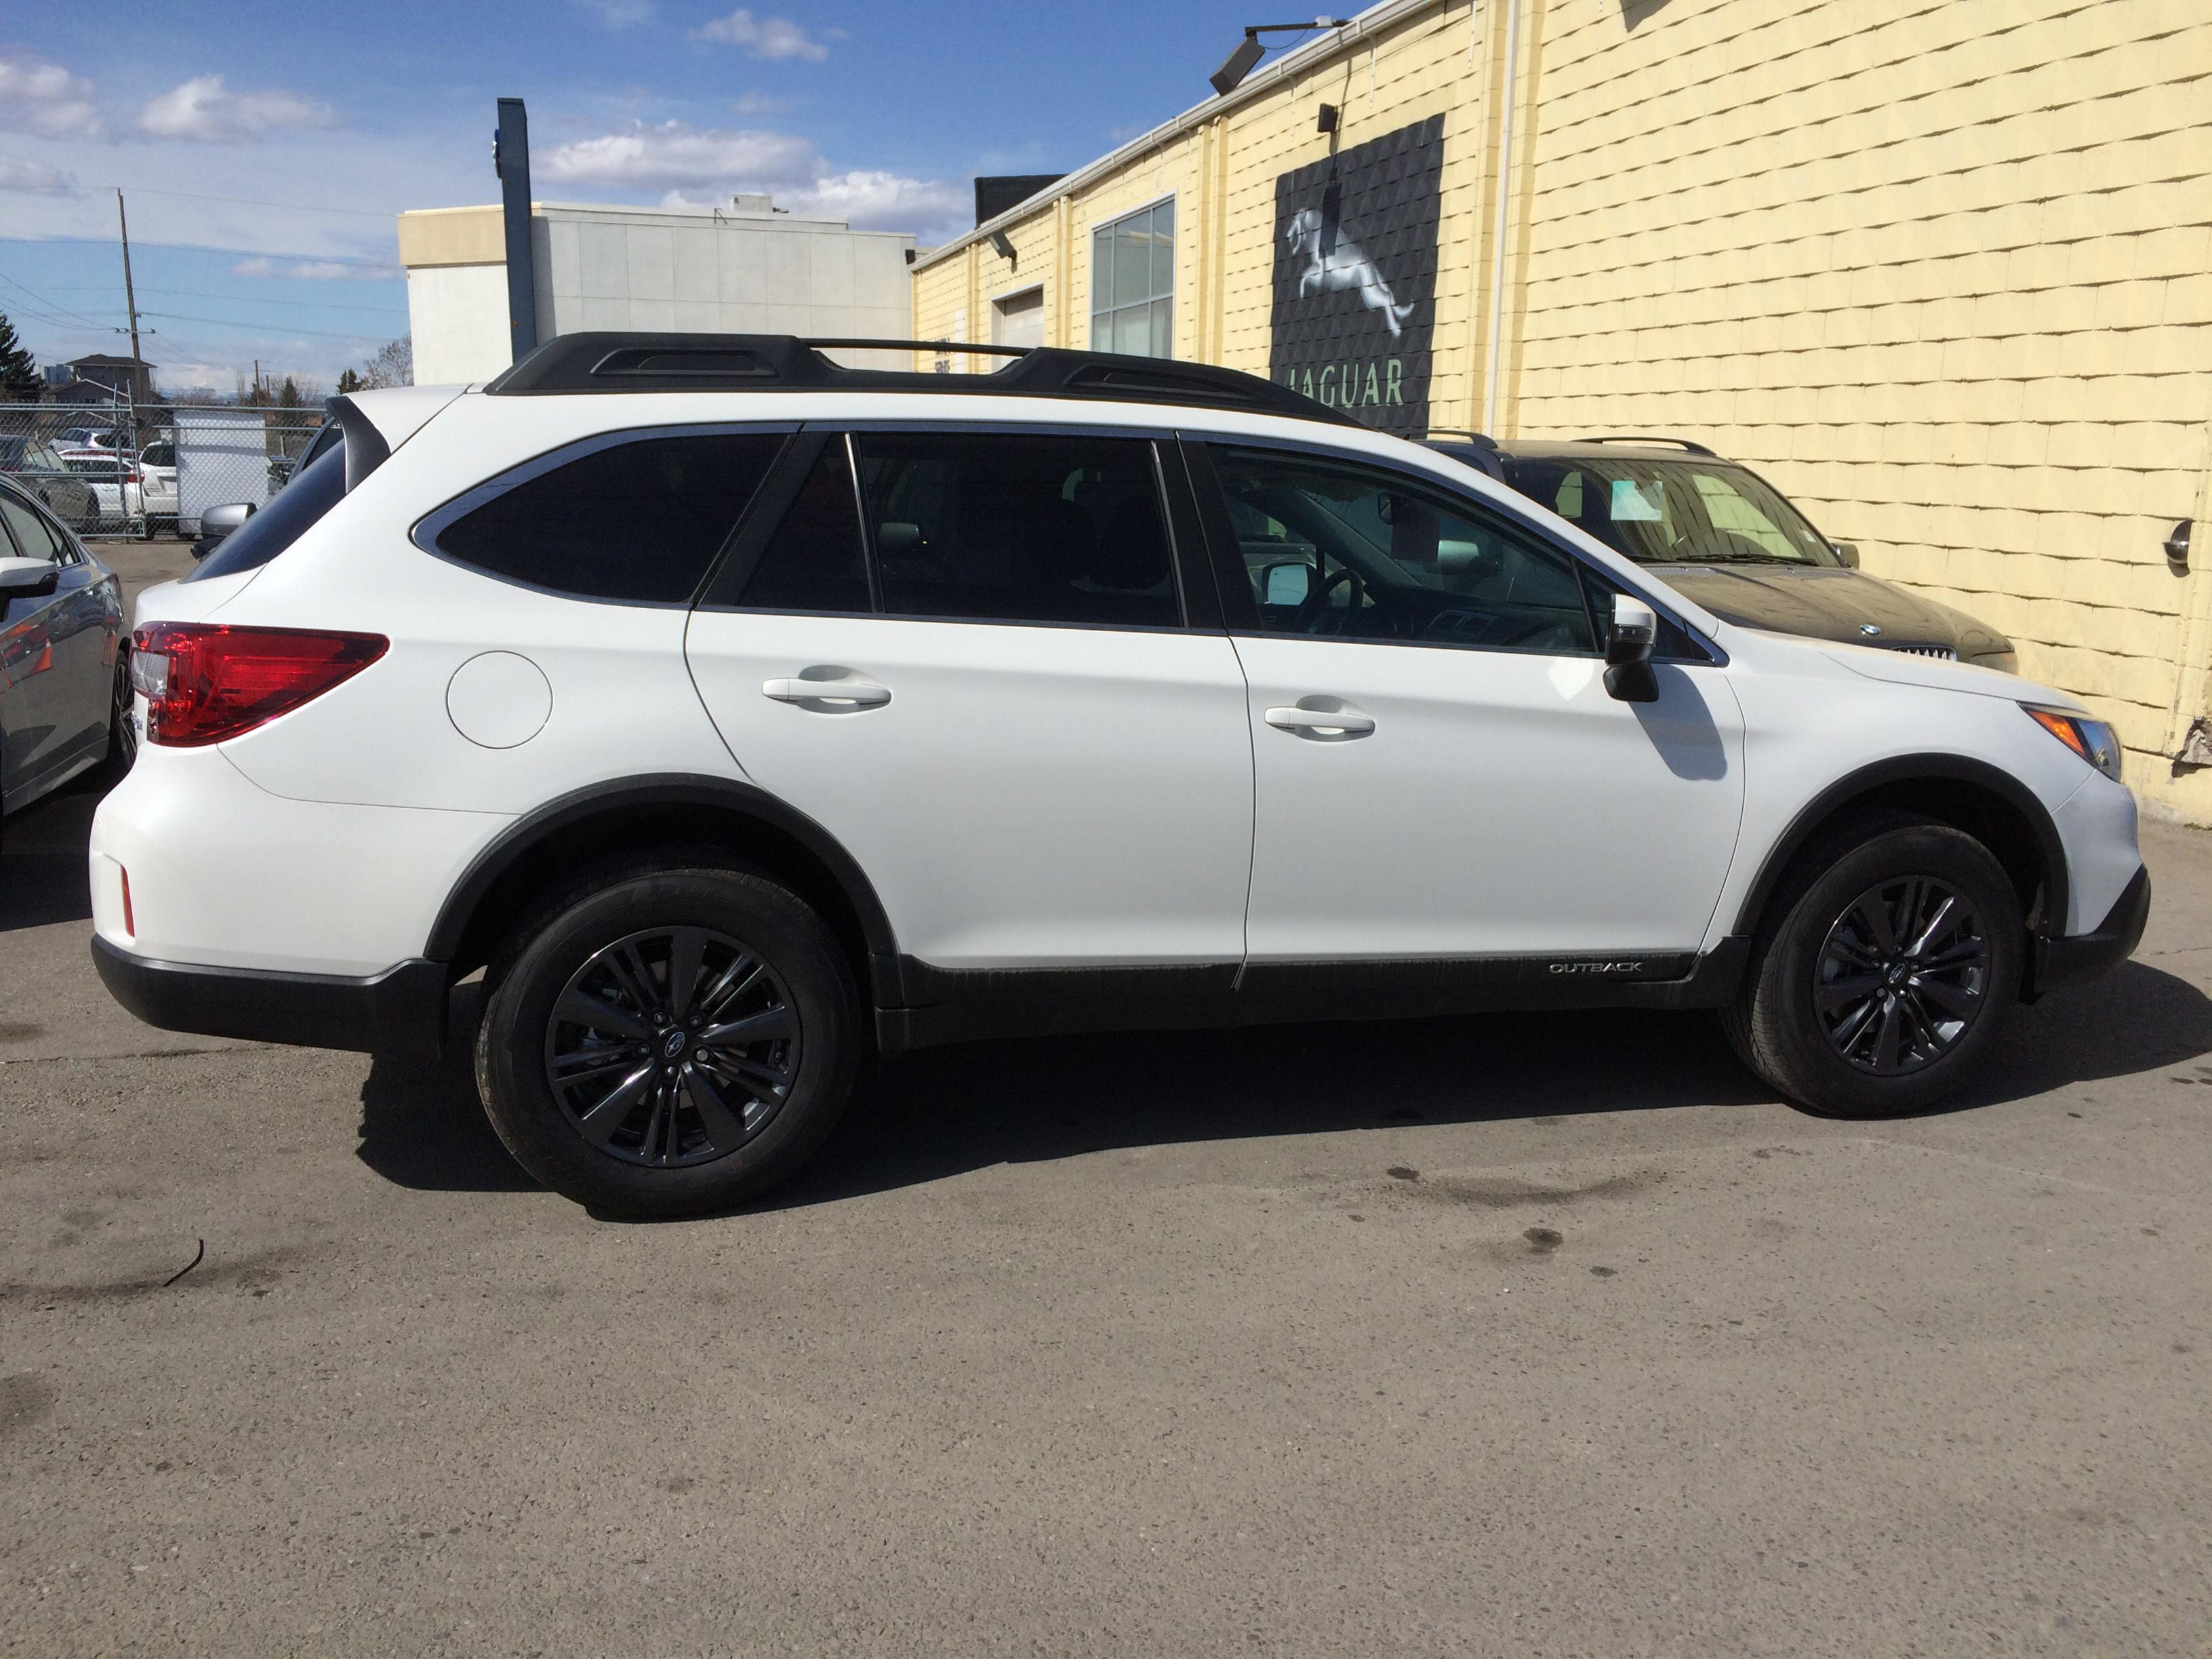 Subaru Outback Lifted >> Steel wheels for winter tires? 3.6r - Subaru Outback - Subaru Outback Forums